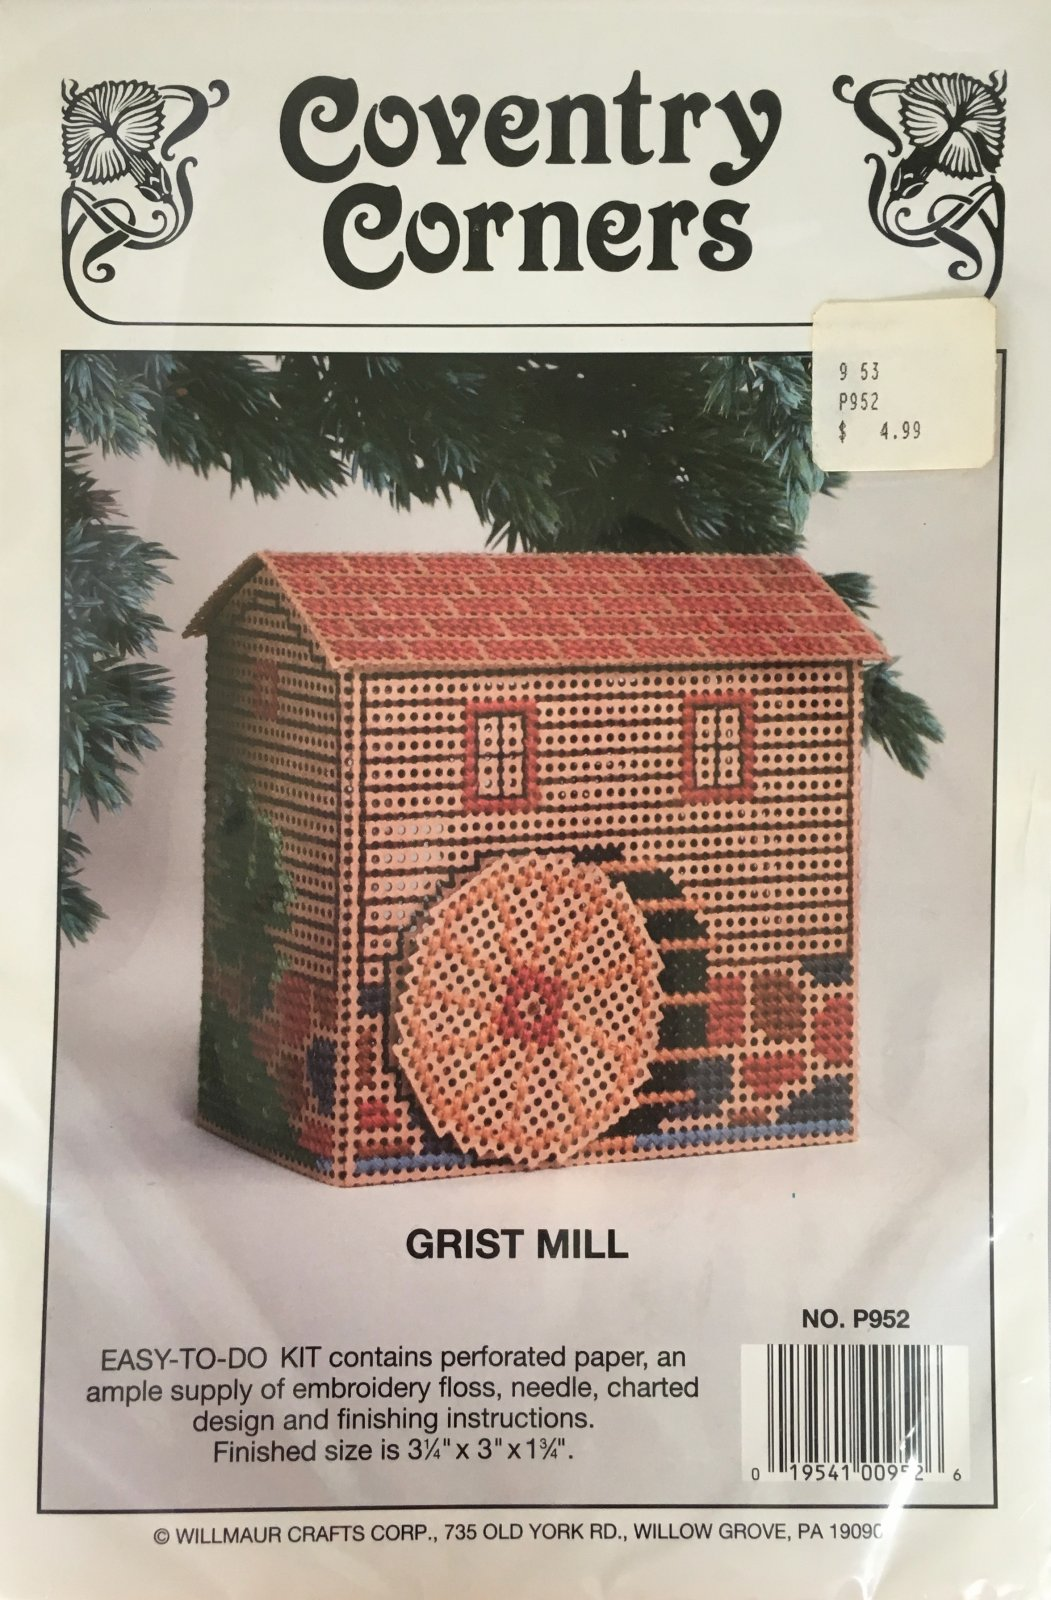 Astor Place: Coventry Corners Grist Mill Kit P952